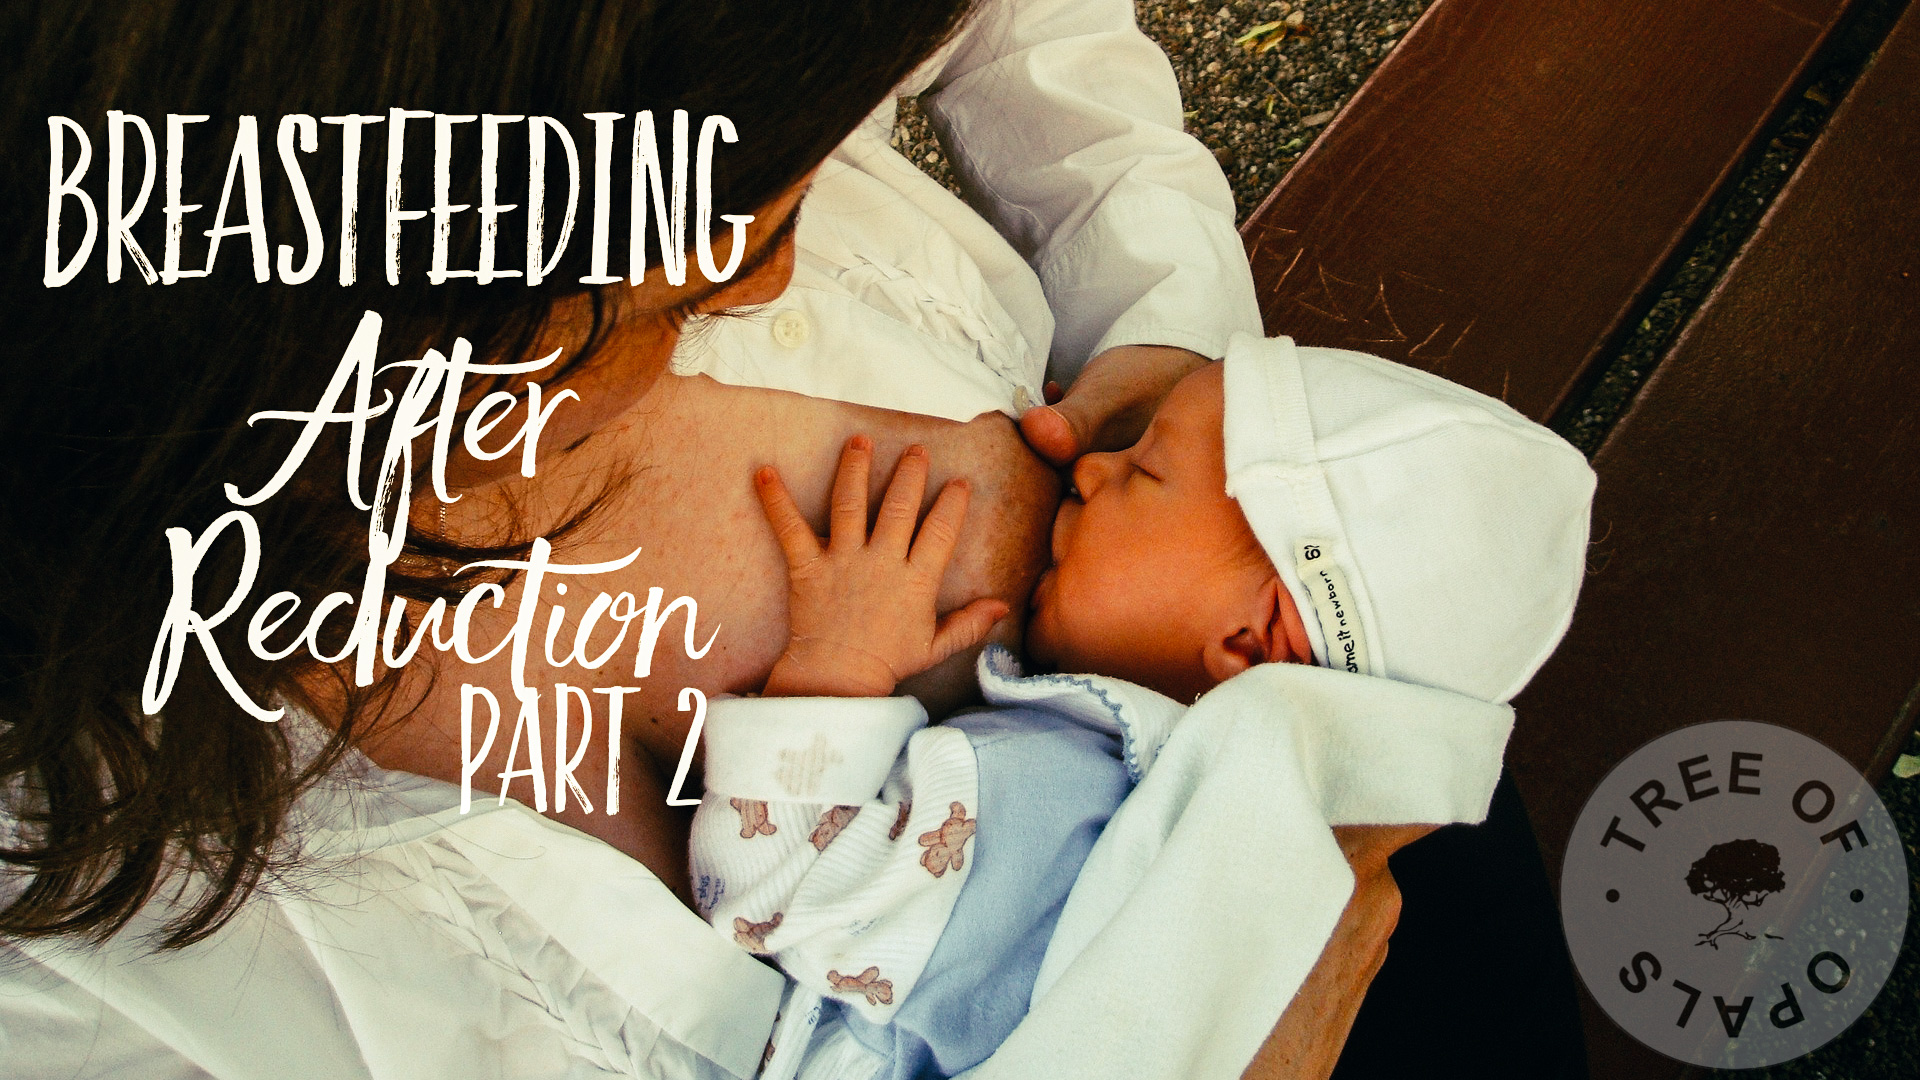 Breastfeeding after reduction story by Nic Kamminga at Tree of Opals part two, with a background to why I thought I wouldn't be able to breastfeed and hope